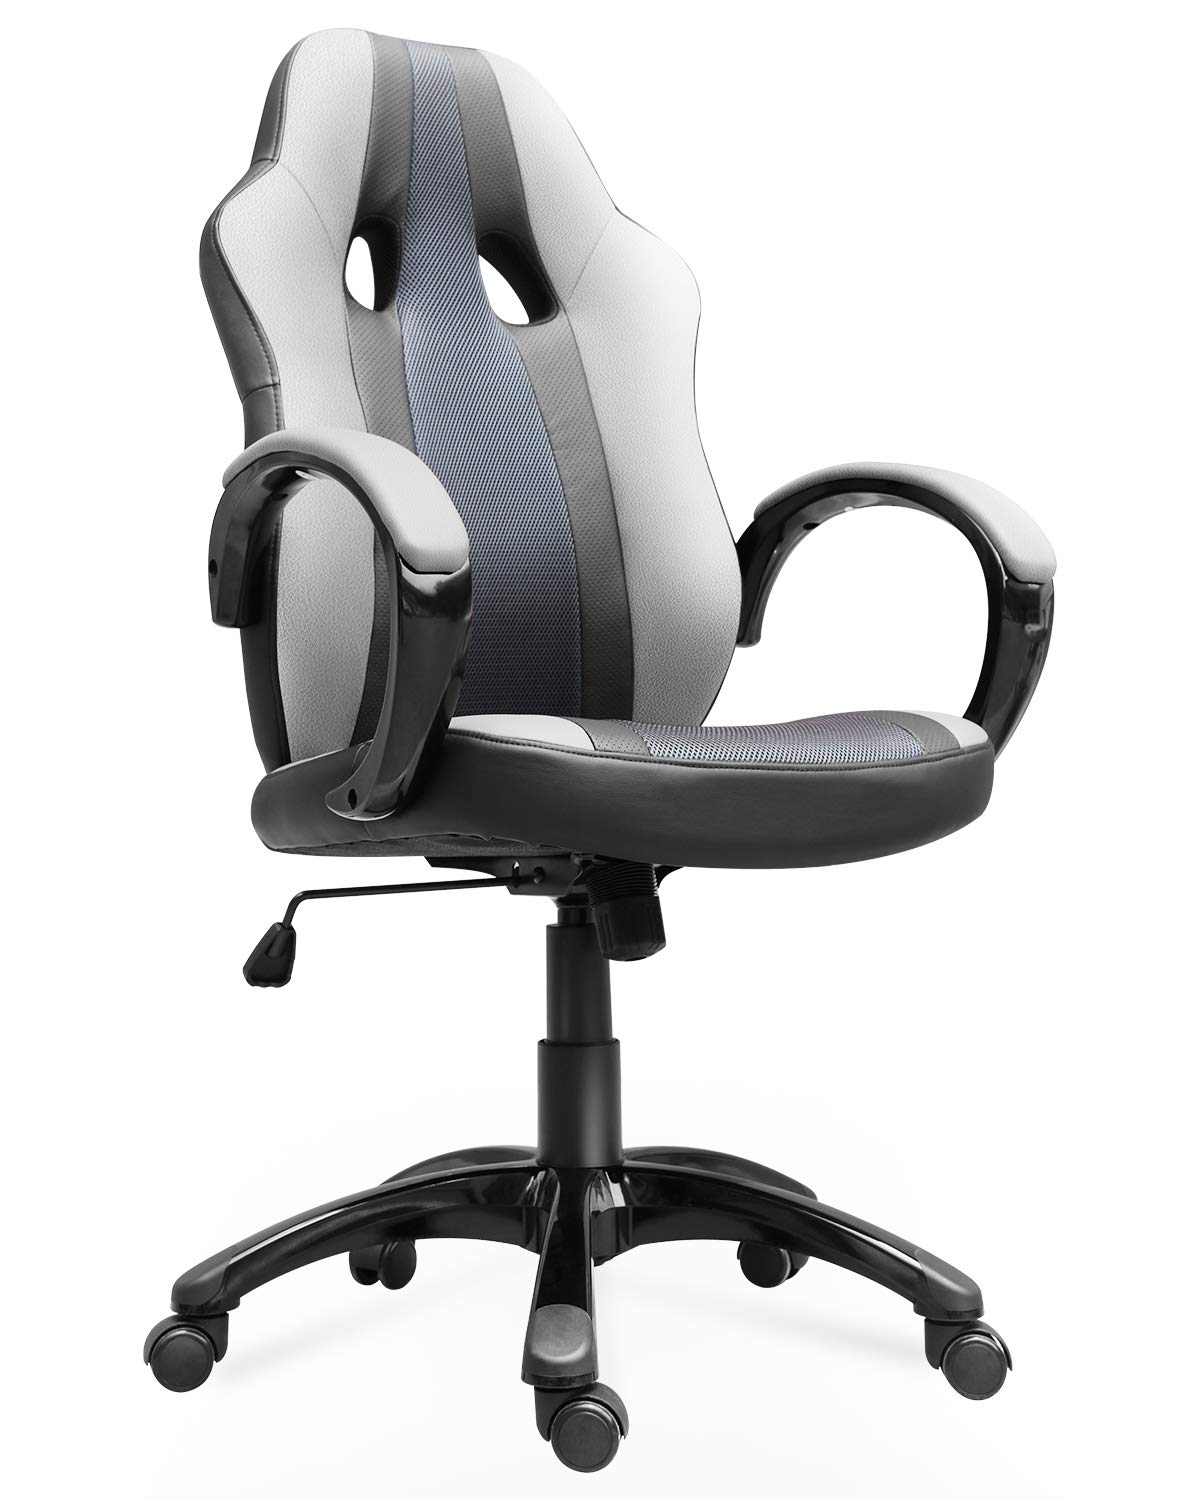 Smugdesk Office Chair, High Back Ergonomic Gaming Desk Chairs for Computer with Lumbar Support, Bonded Leather, Adjustable Swivel Comfortable Rolling Chair by SMUGDESK